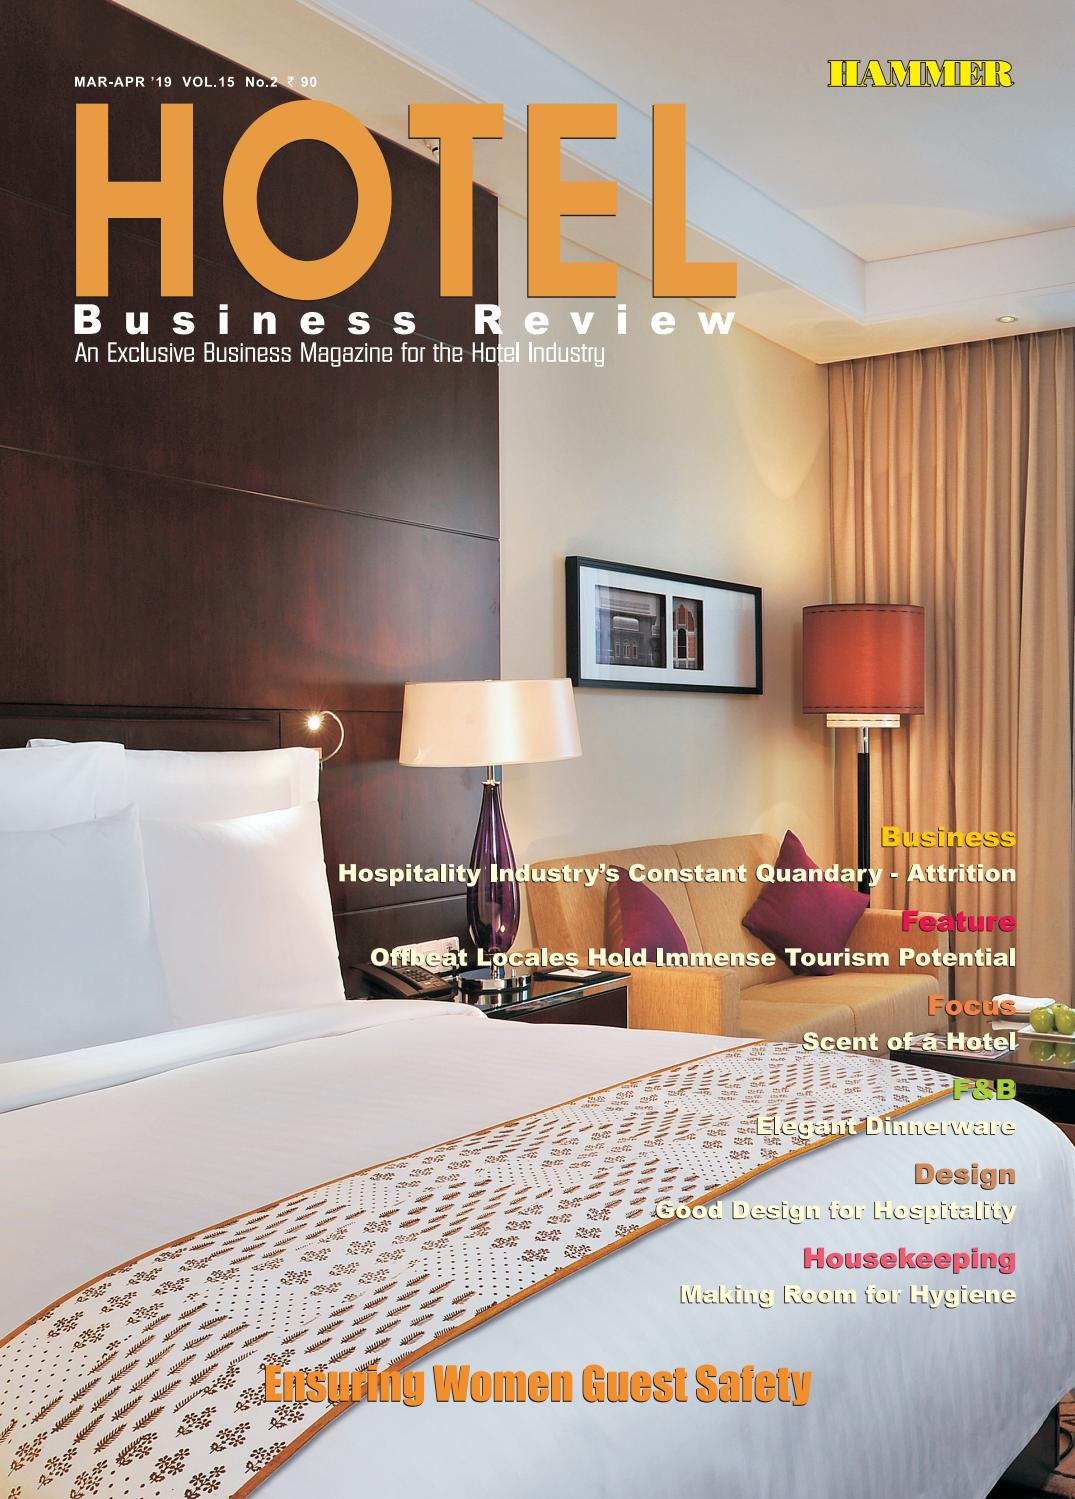 Hotel Business Review (Mar-Apr 2019) by Hammer Publishers